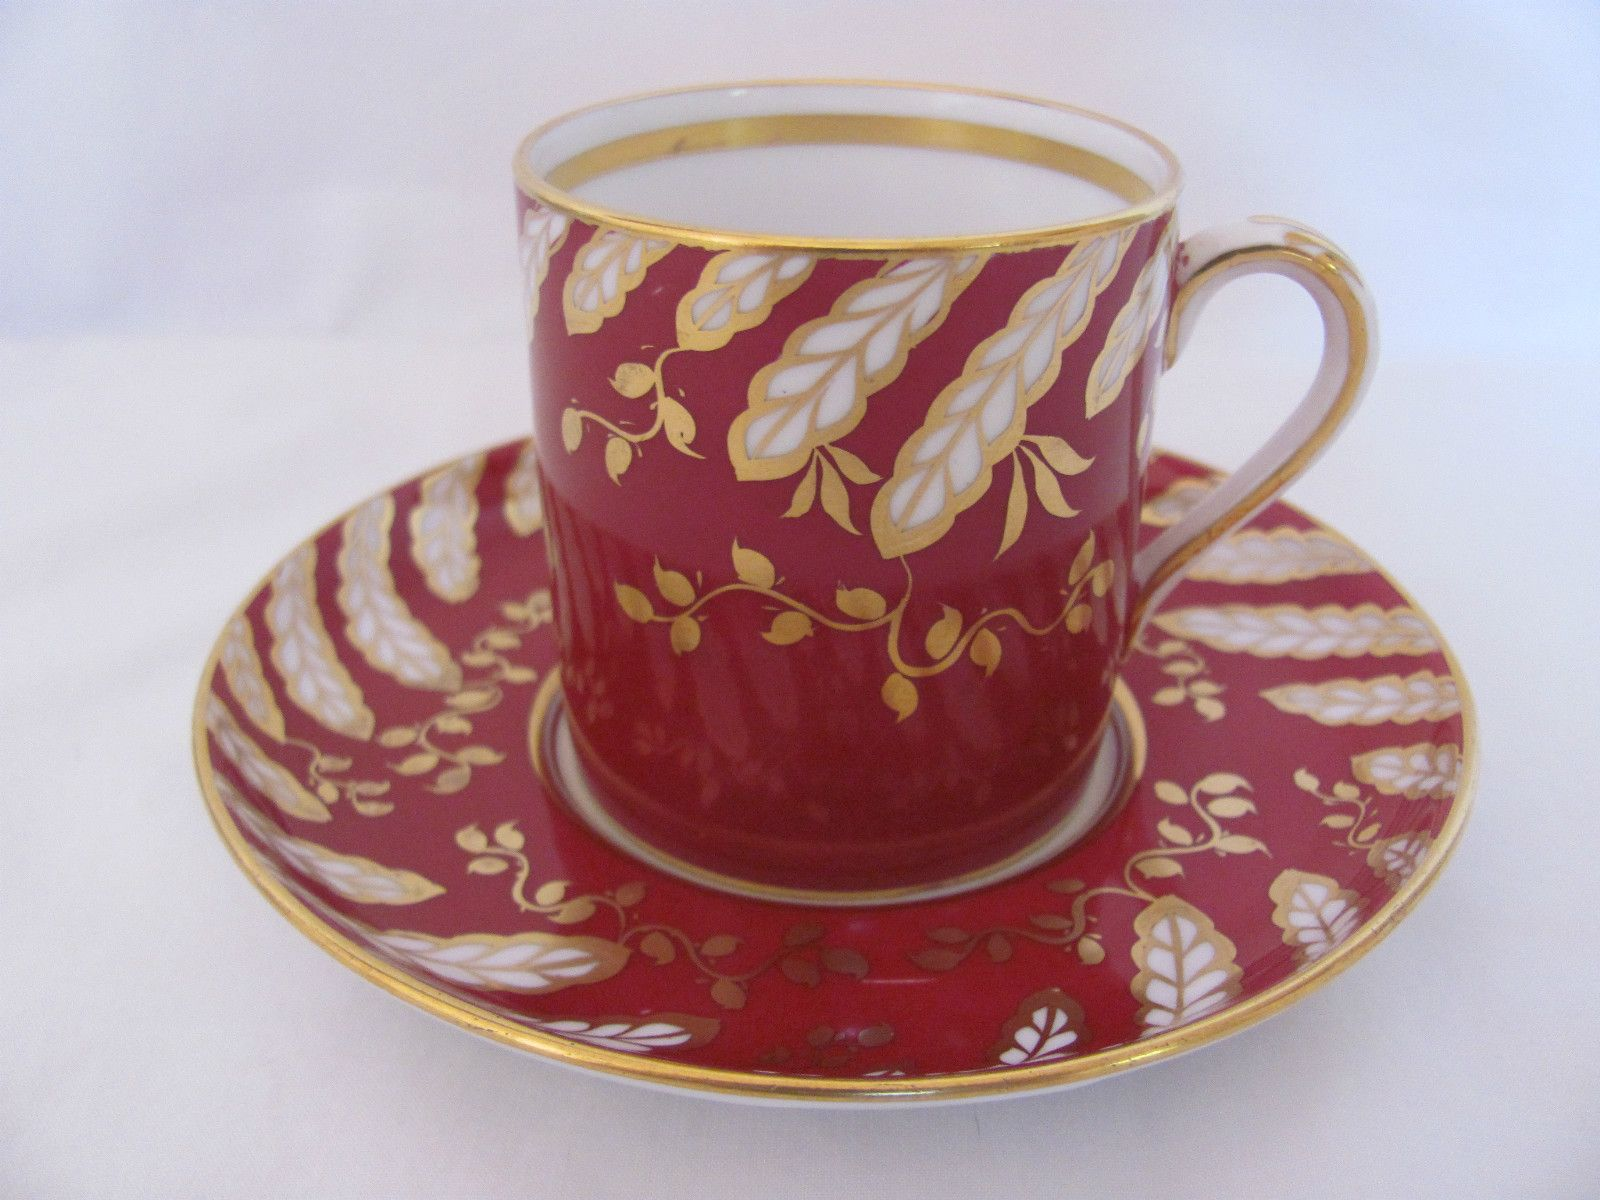 Copeland Grosvenor China Demitasse Cup and Saucer Set Made October 1939